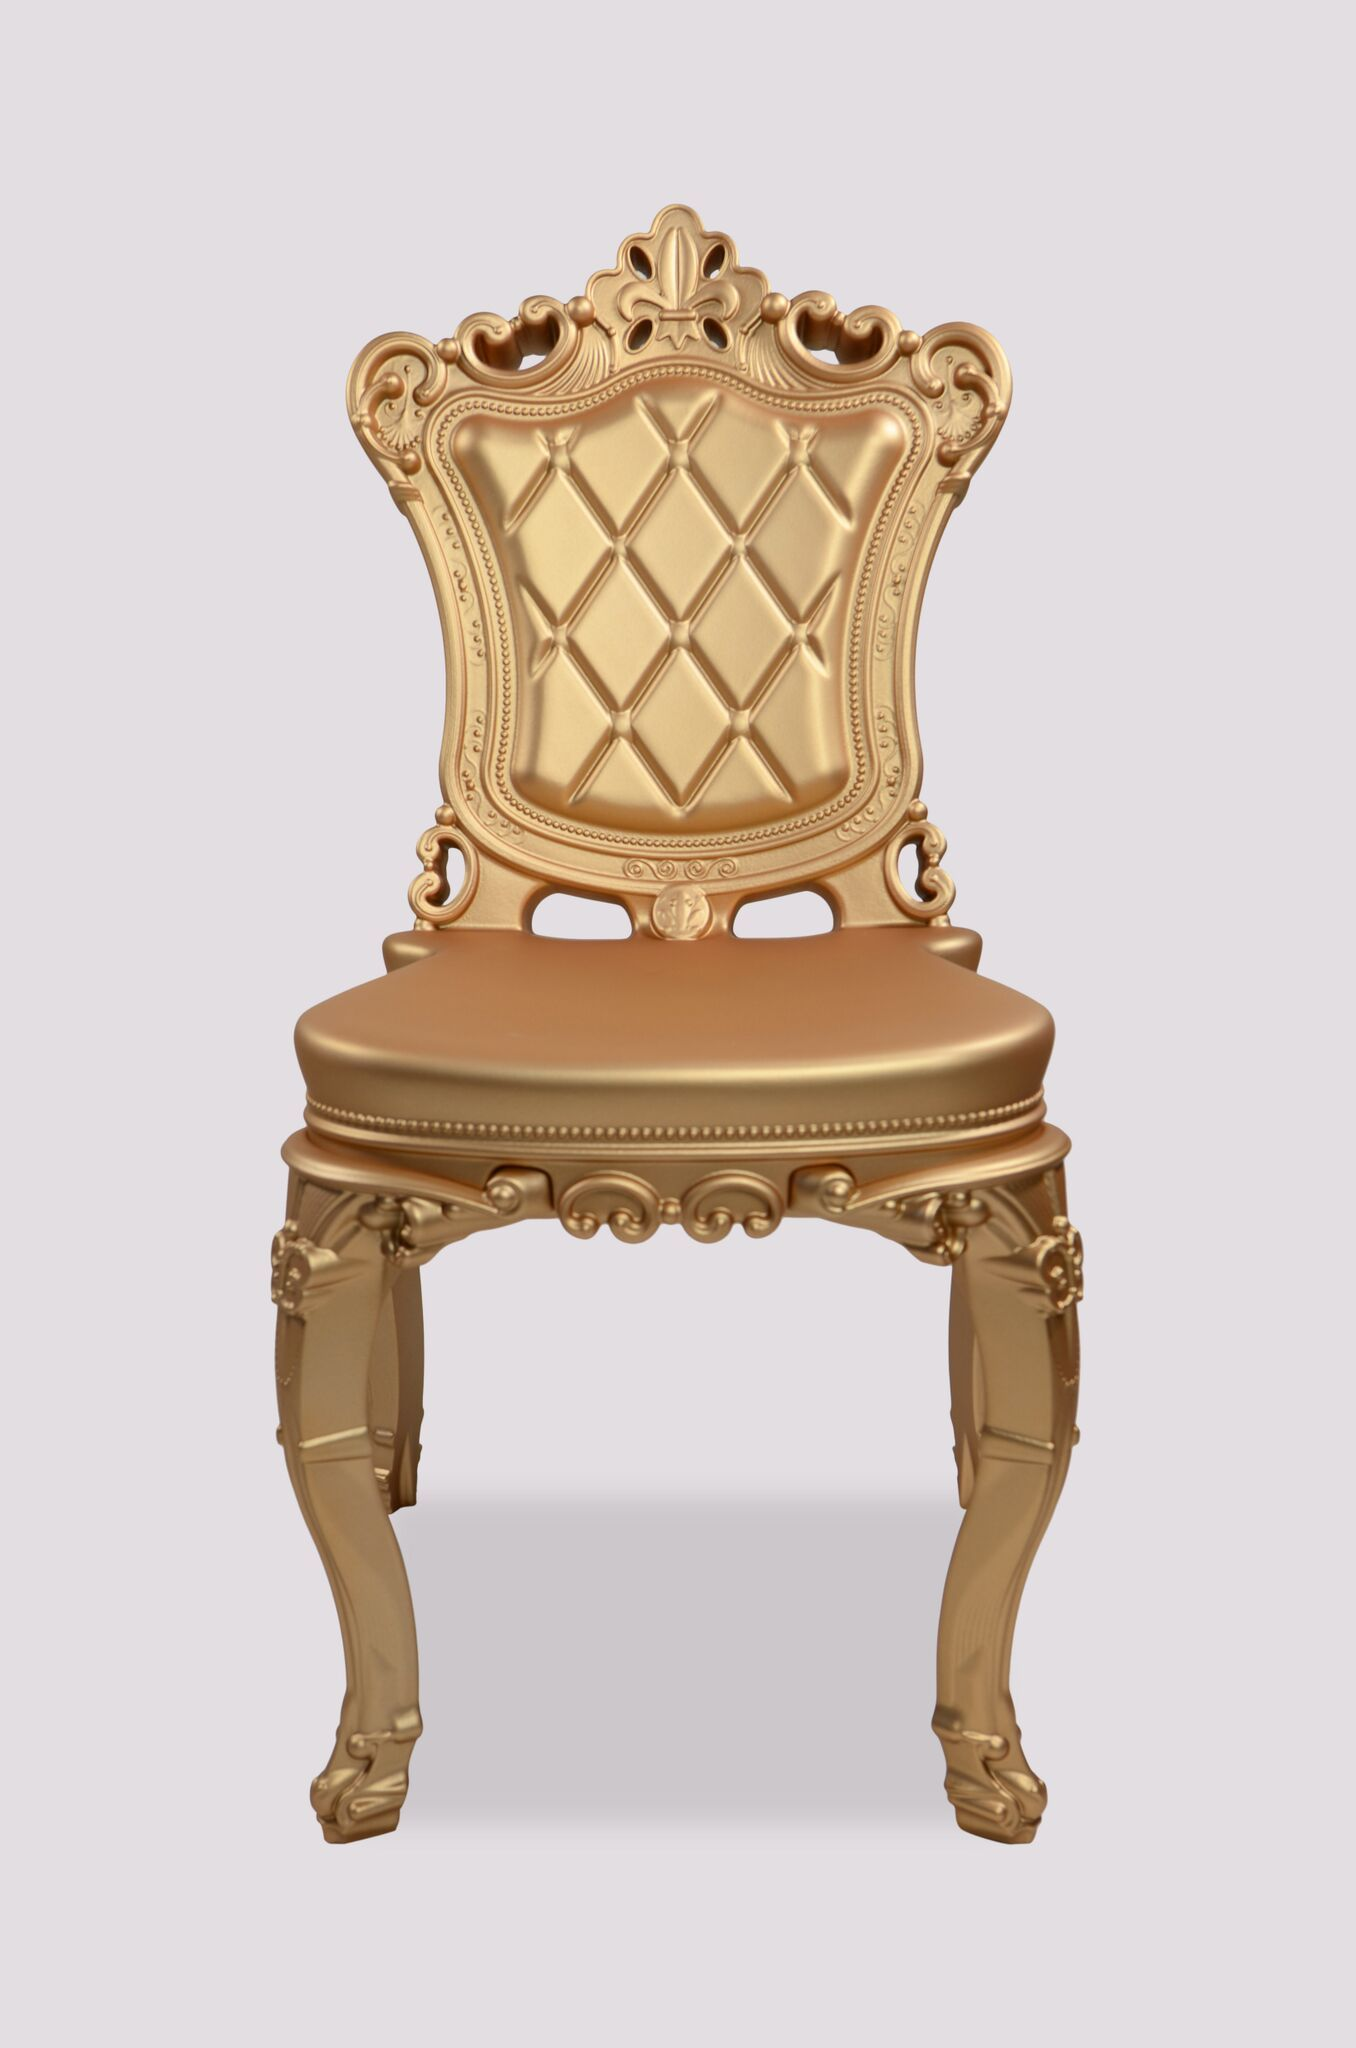 The Princess of Love owes its whimsical appearance to its baroque style, bright, modern color options, the exaggerated contours and intricate details that encompass each chair. The Princess of Love is an ideal chair for any type of indoor or outdoor setting, such as dining rooms, shops and restaurants as well as for contract. Made in Italy, Eco-friendly, resists color fading with a UV coat rating of 6, is scratch, shock and weather resistant and easy to clean!  Size: 36″H x 21″W x 21″D